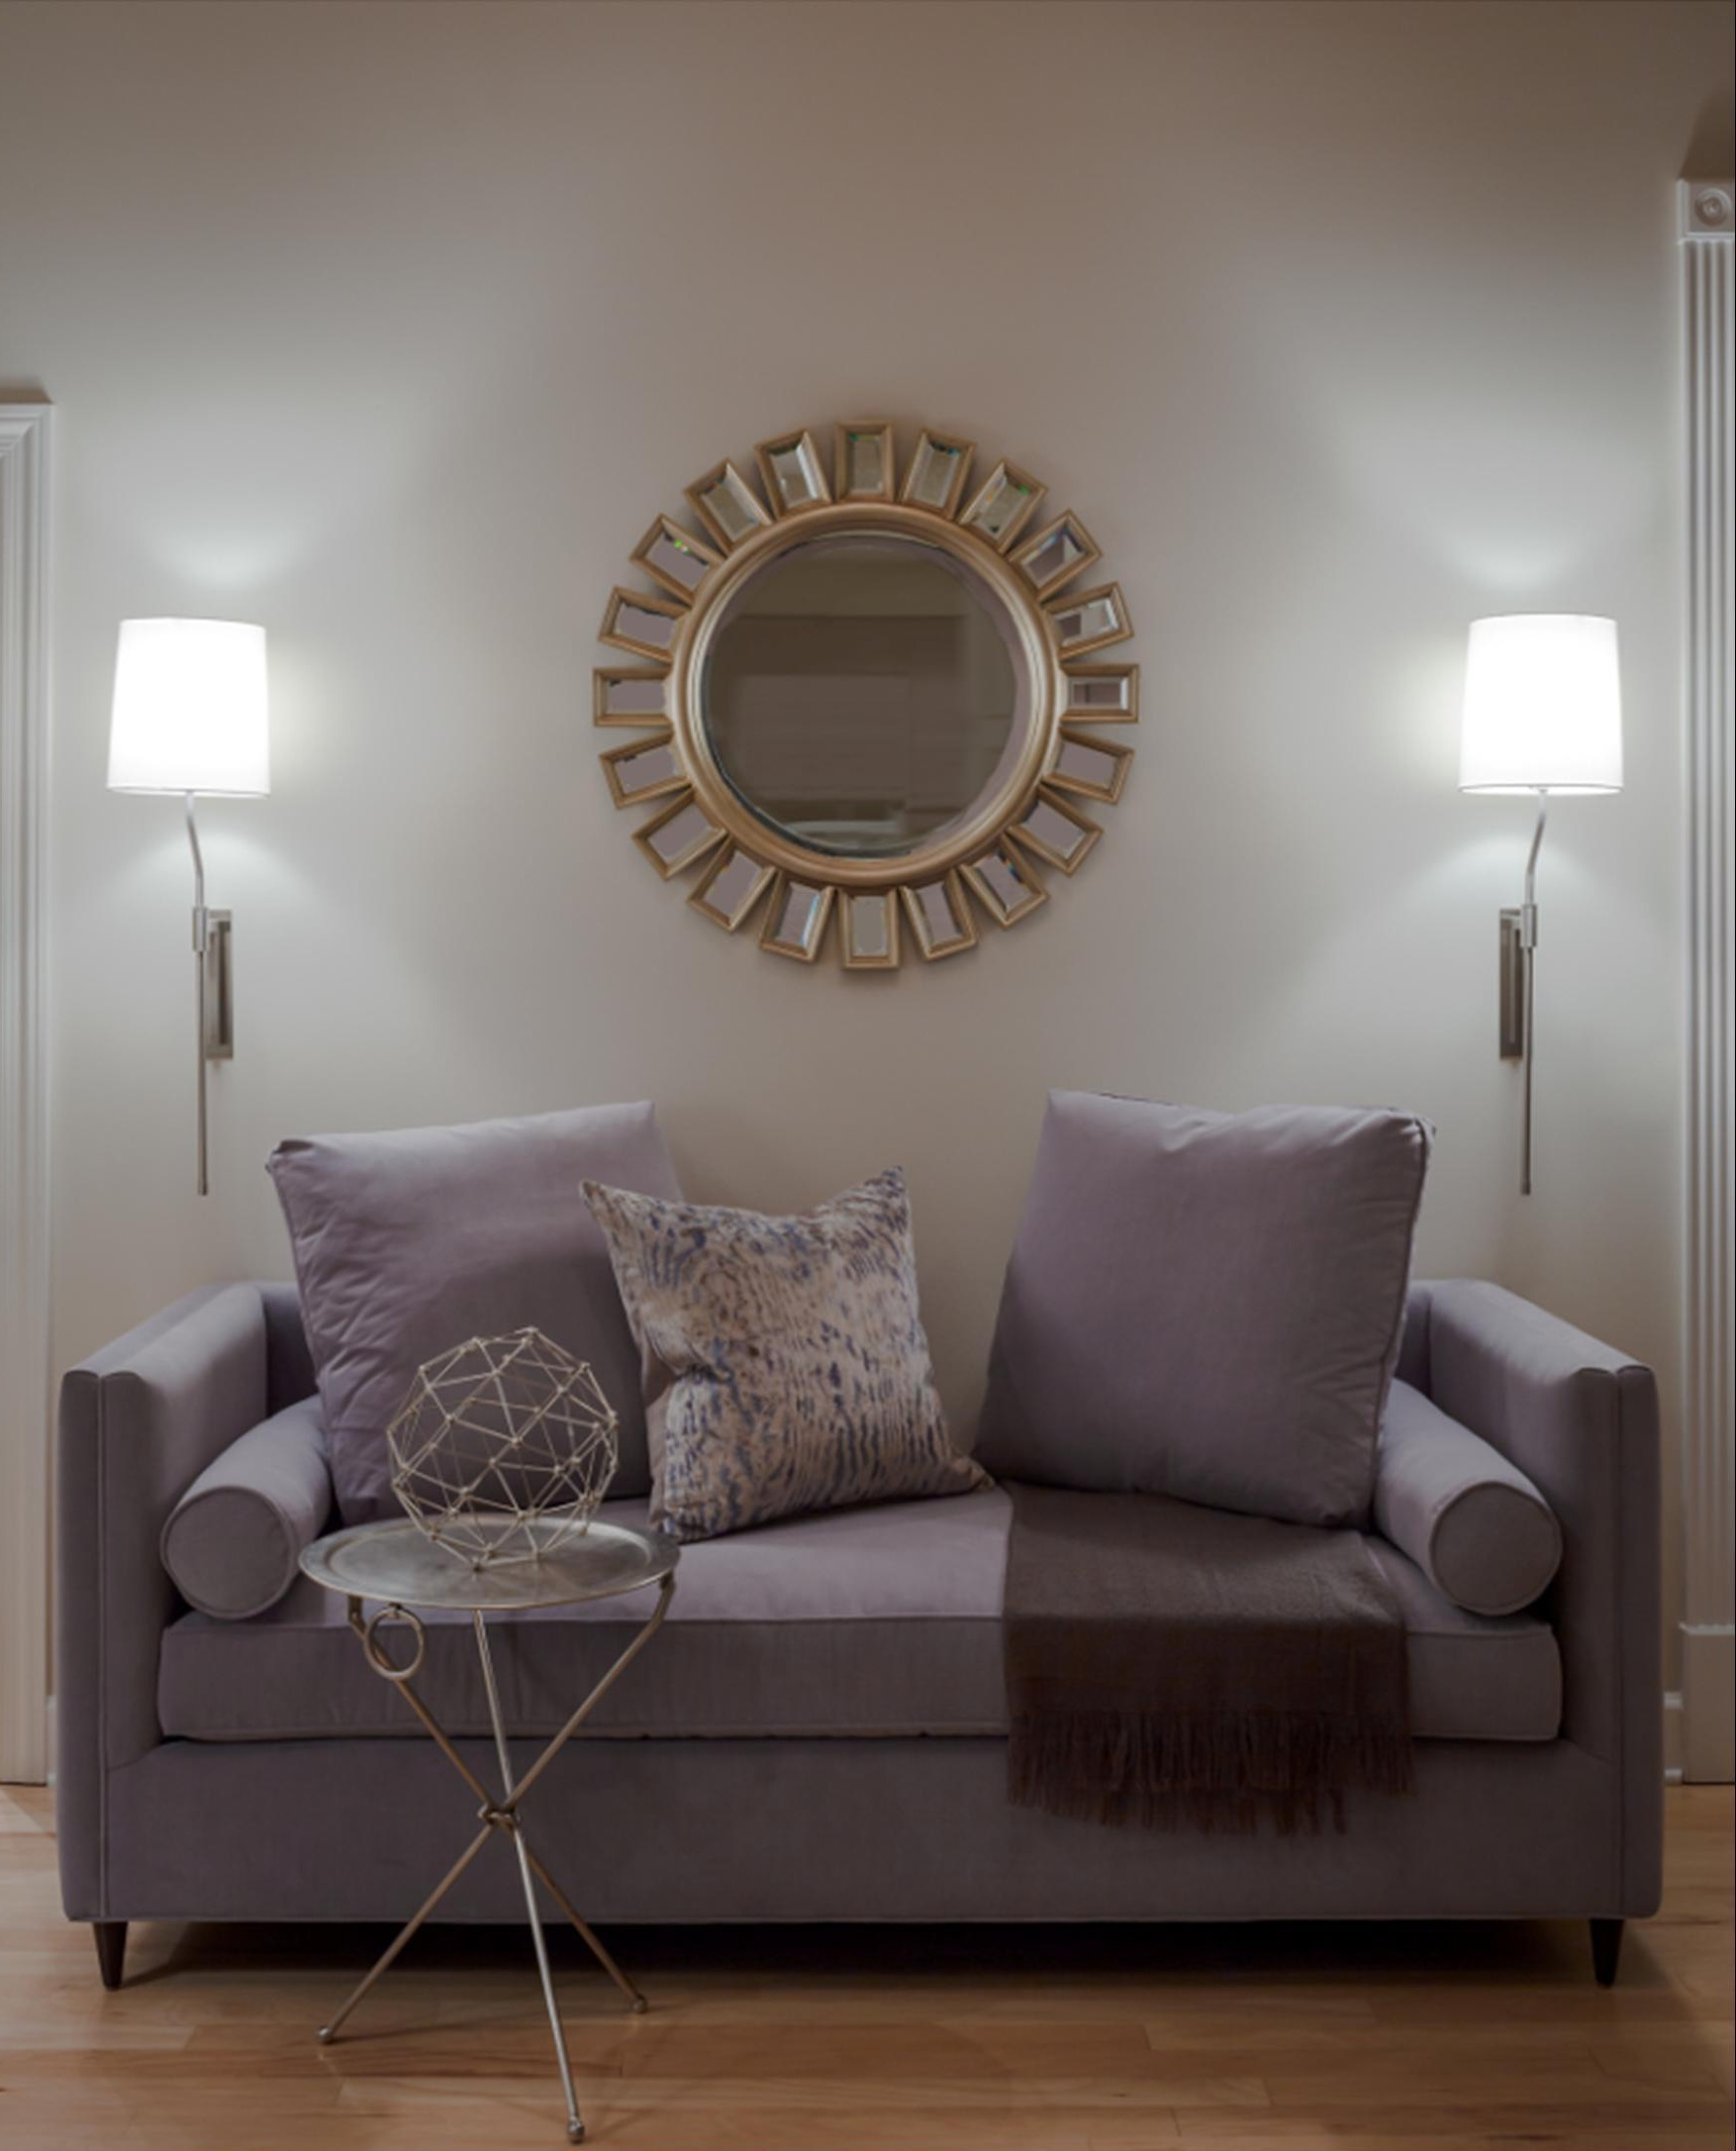 Unique Small Metal Table, Art Deco Mirror And Purple Sofa For Trendy Living Room (View 11 of 25)